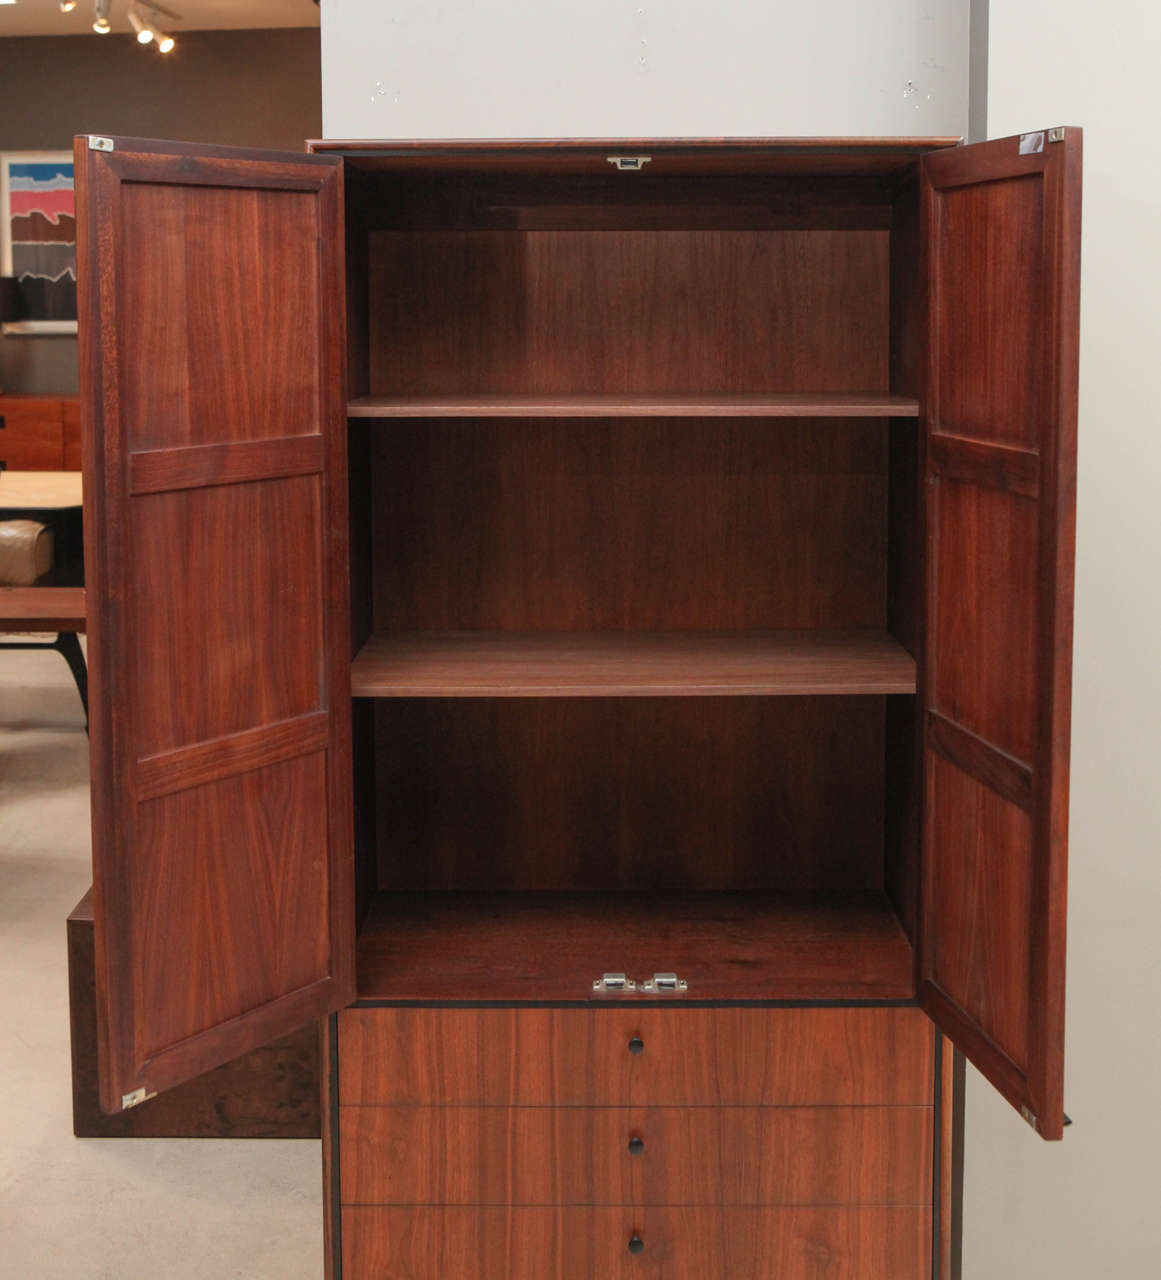 Tall Walnut and Cane Cabinet with Drawers at Bottom at 1stdibs